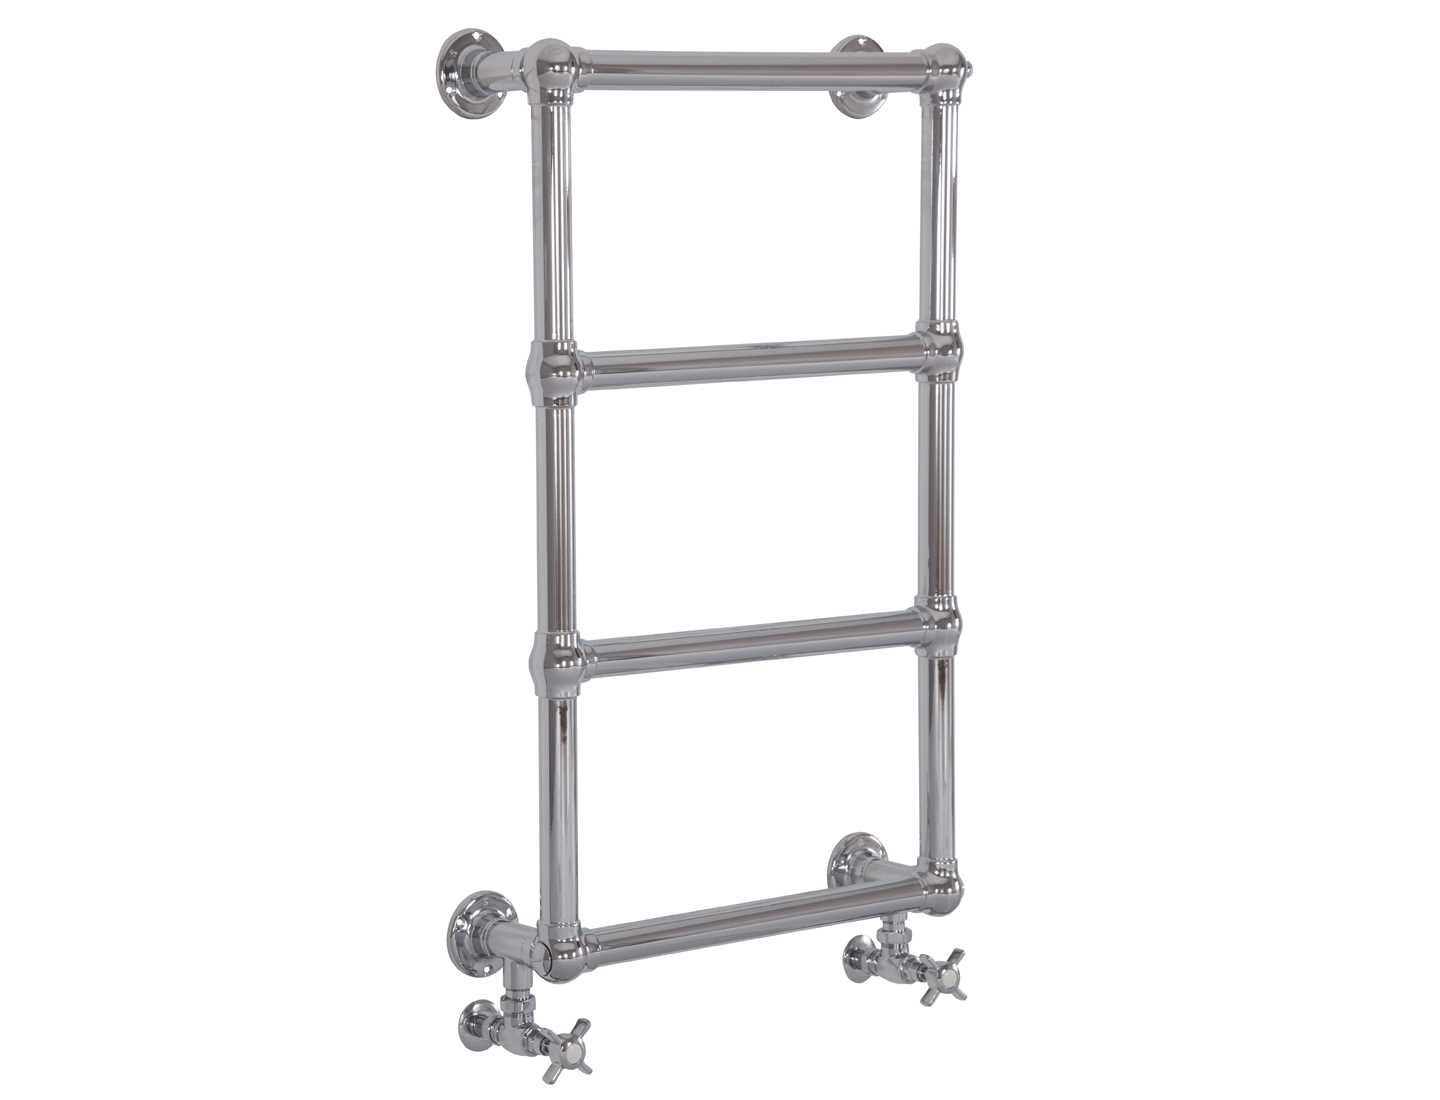 Bassingham chrome towel rail